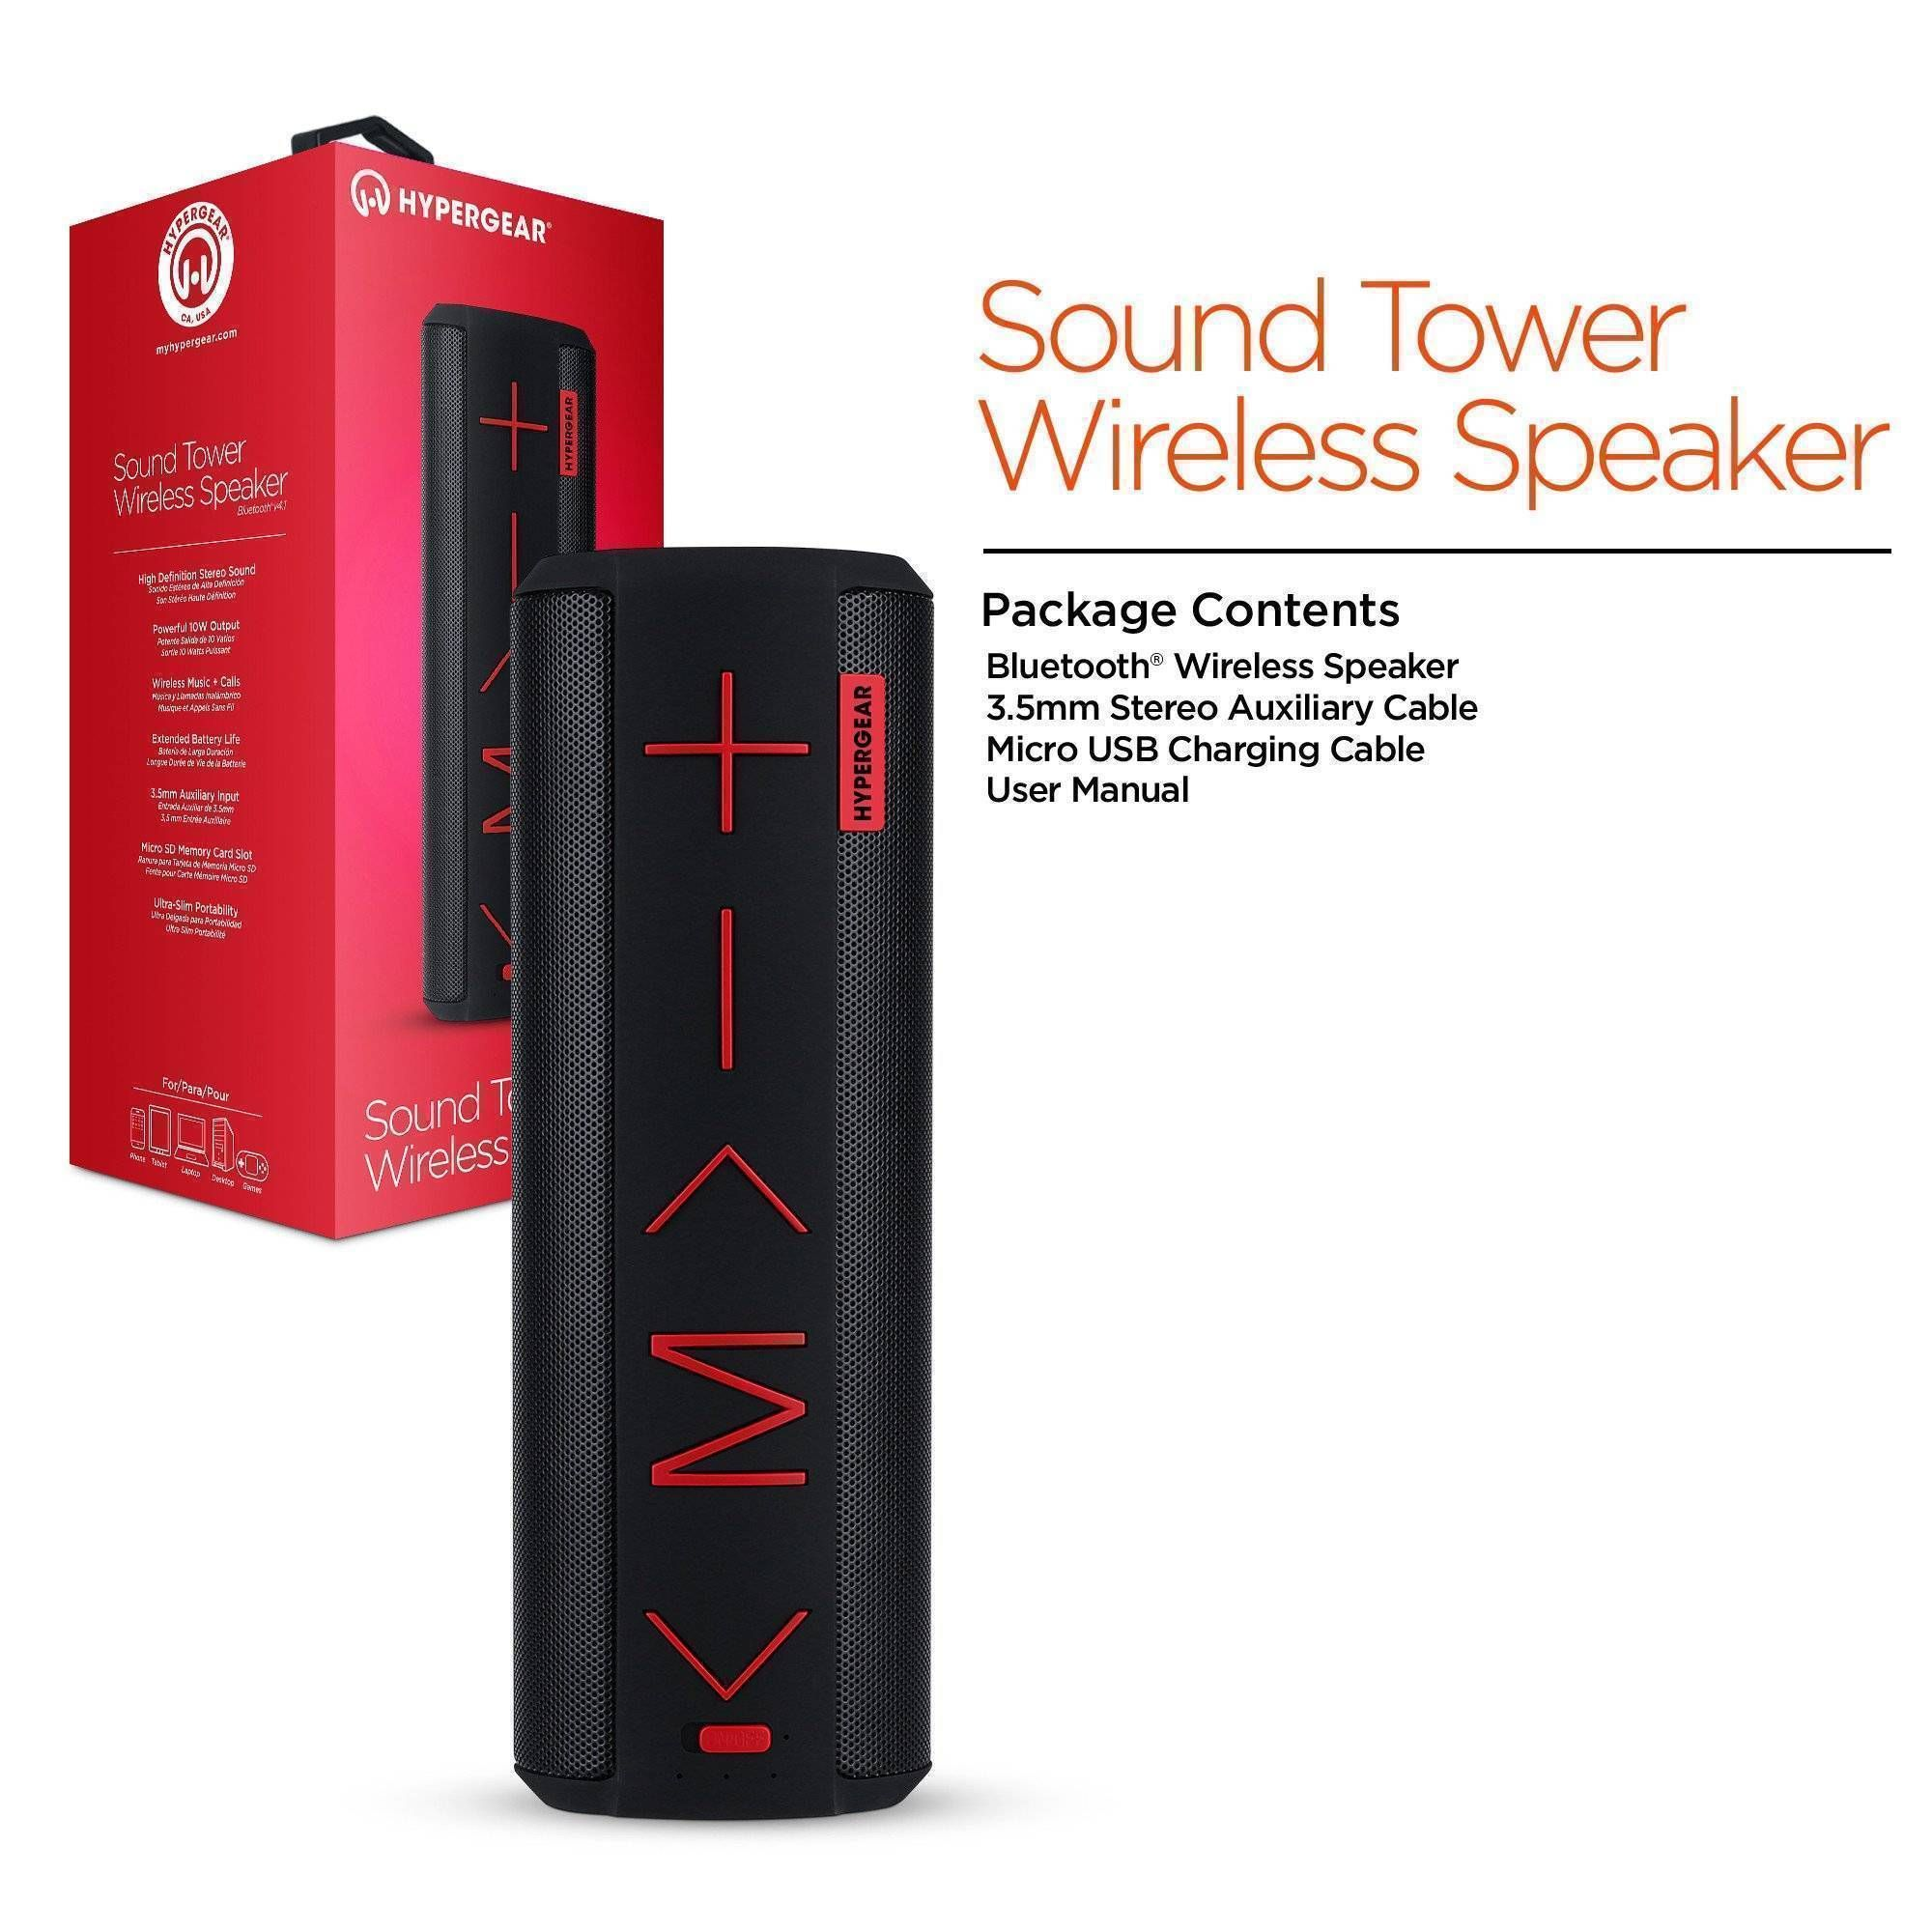 SOUND TOWER WIRELESS SPEAKER - Black | Wireless speakers ...